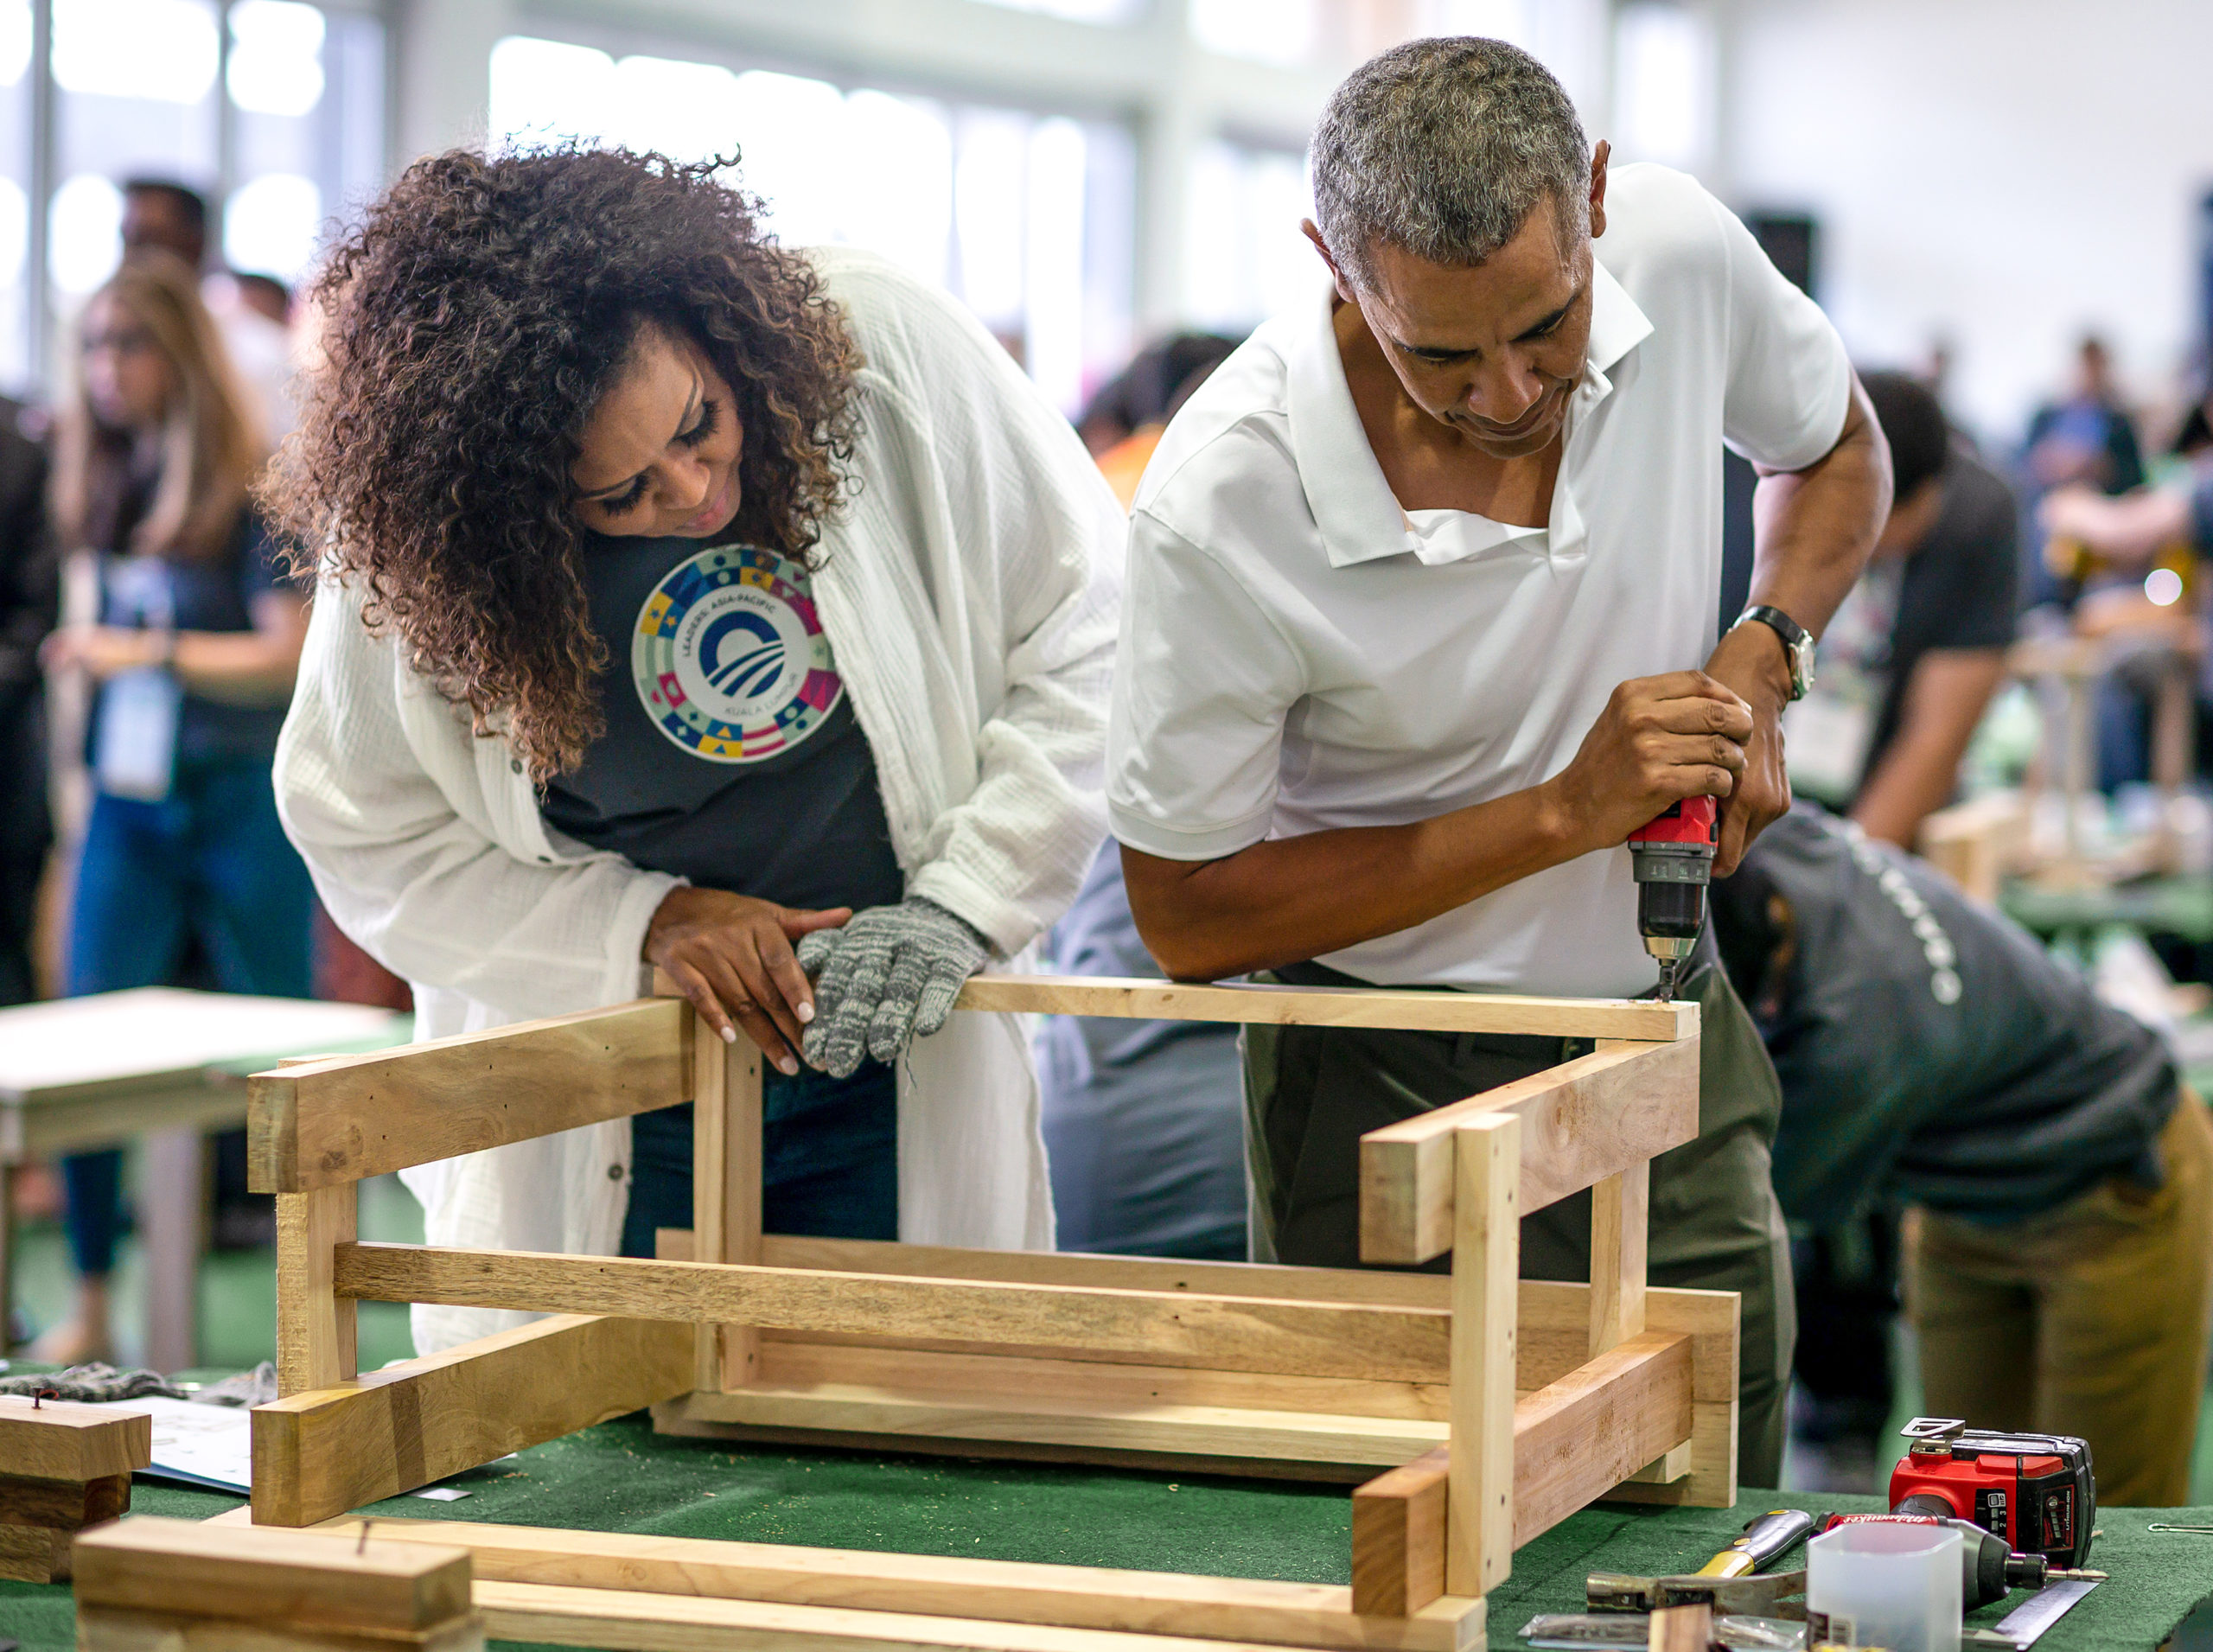 President Obama drills into a piece of furniture as Mrs. Obama looks on.